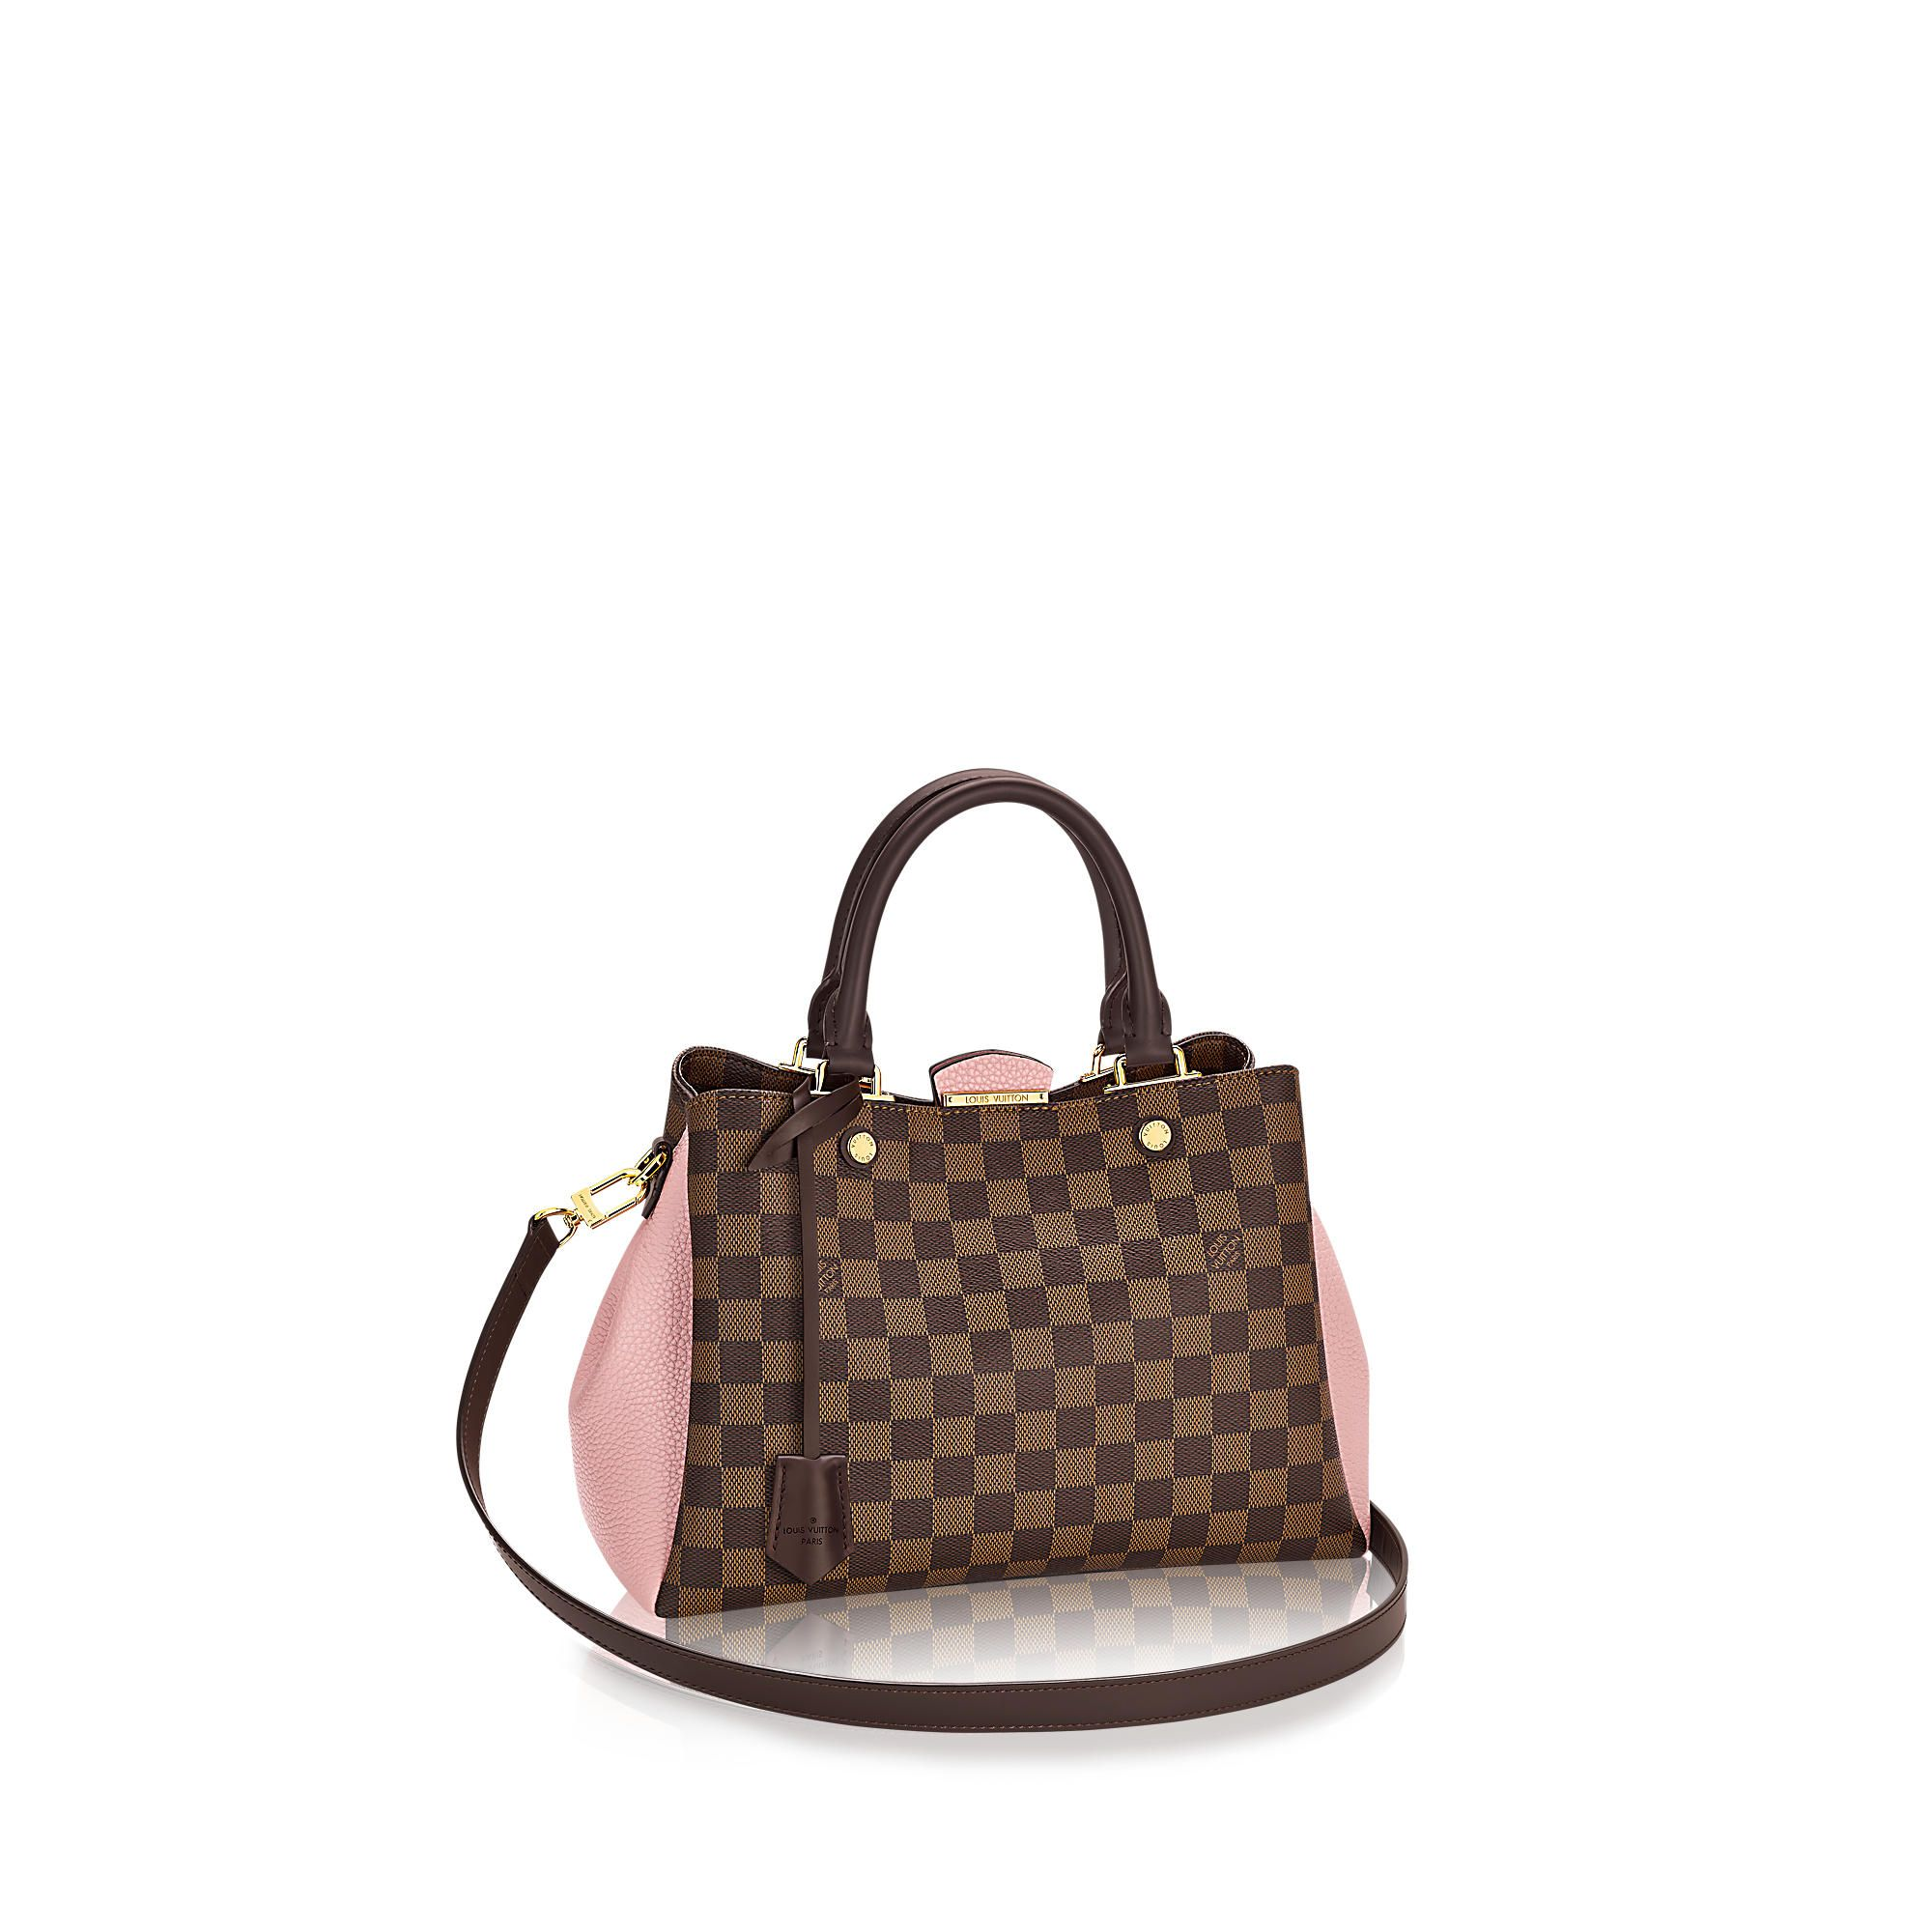 Hello,    I would like to share the following Louis Vuitton item with you: Brittany.  Link: http://eu.louisvuitton.com/eng-e1/products/brittany-damier-ebene-014812    Regards,